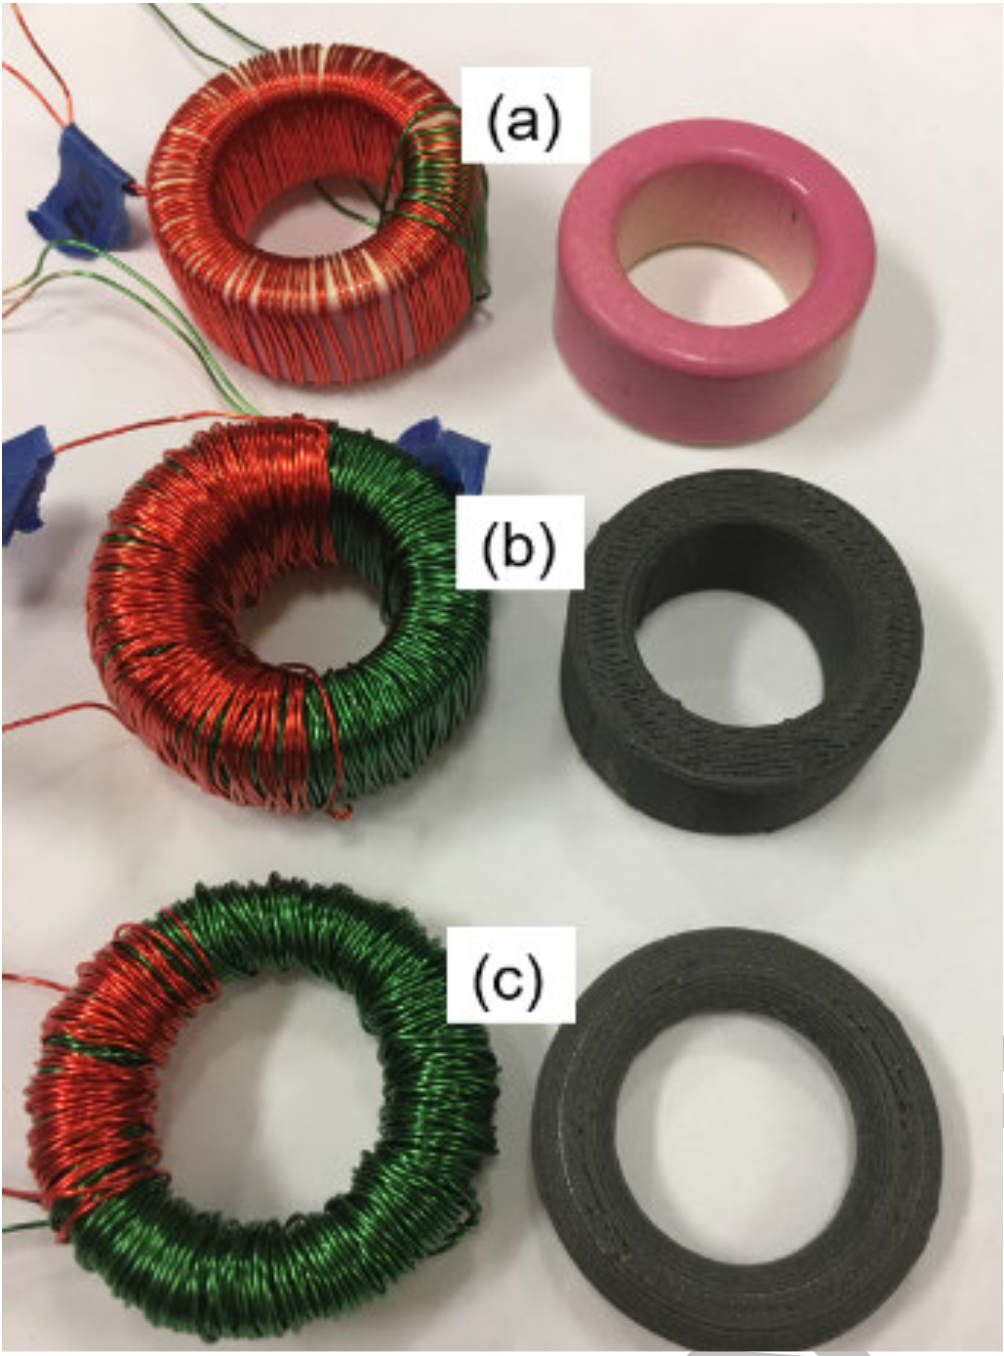 "Figure 3 shows the testing of transformer cores ""Left side shows wrapped cores, right side is just the core. (a) commercial core, (b) 3D printed transformer core that is the same shape as the commercial core, and (c) toroidal shaped transformer core."" Image via Journal of Magnetism and Magnetic Materials."